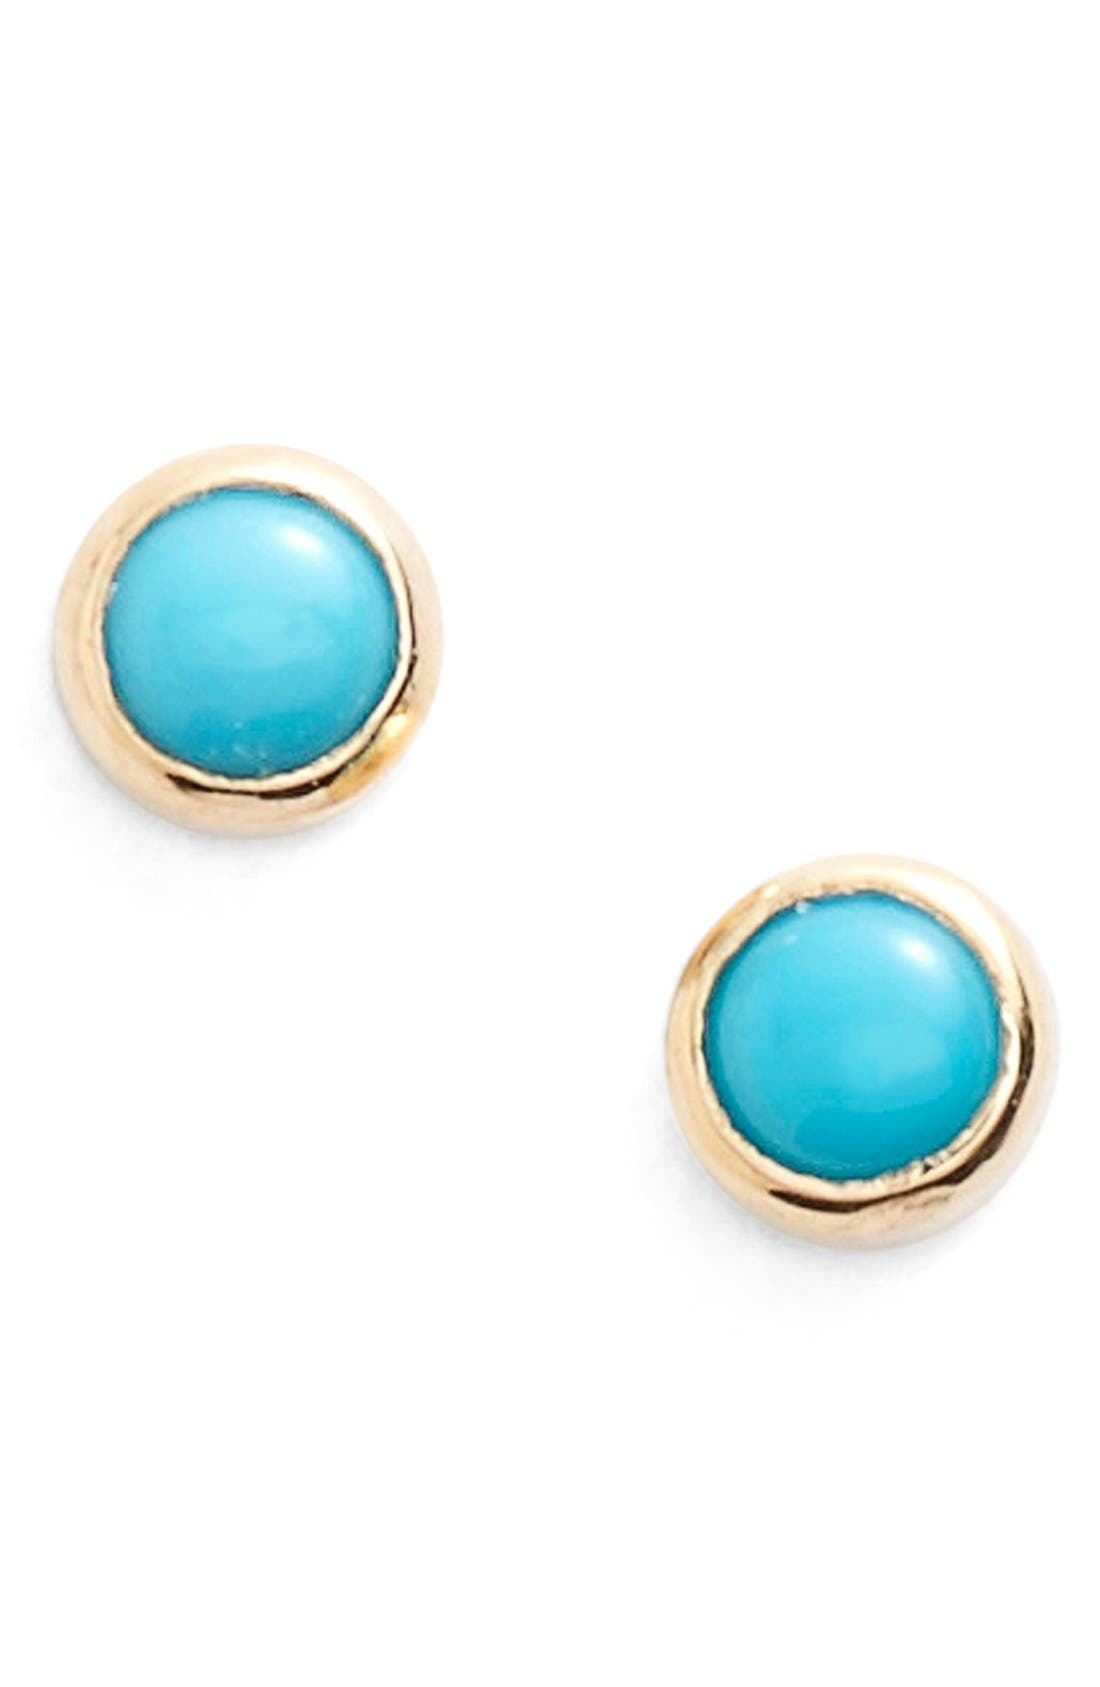 Main Image - Zoë Chicco Turquoise Stud Earrings